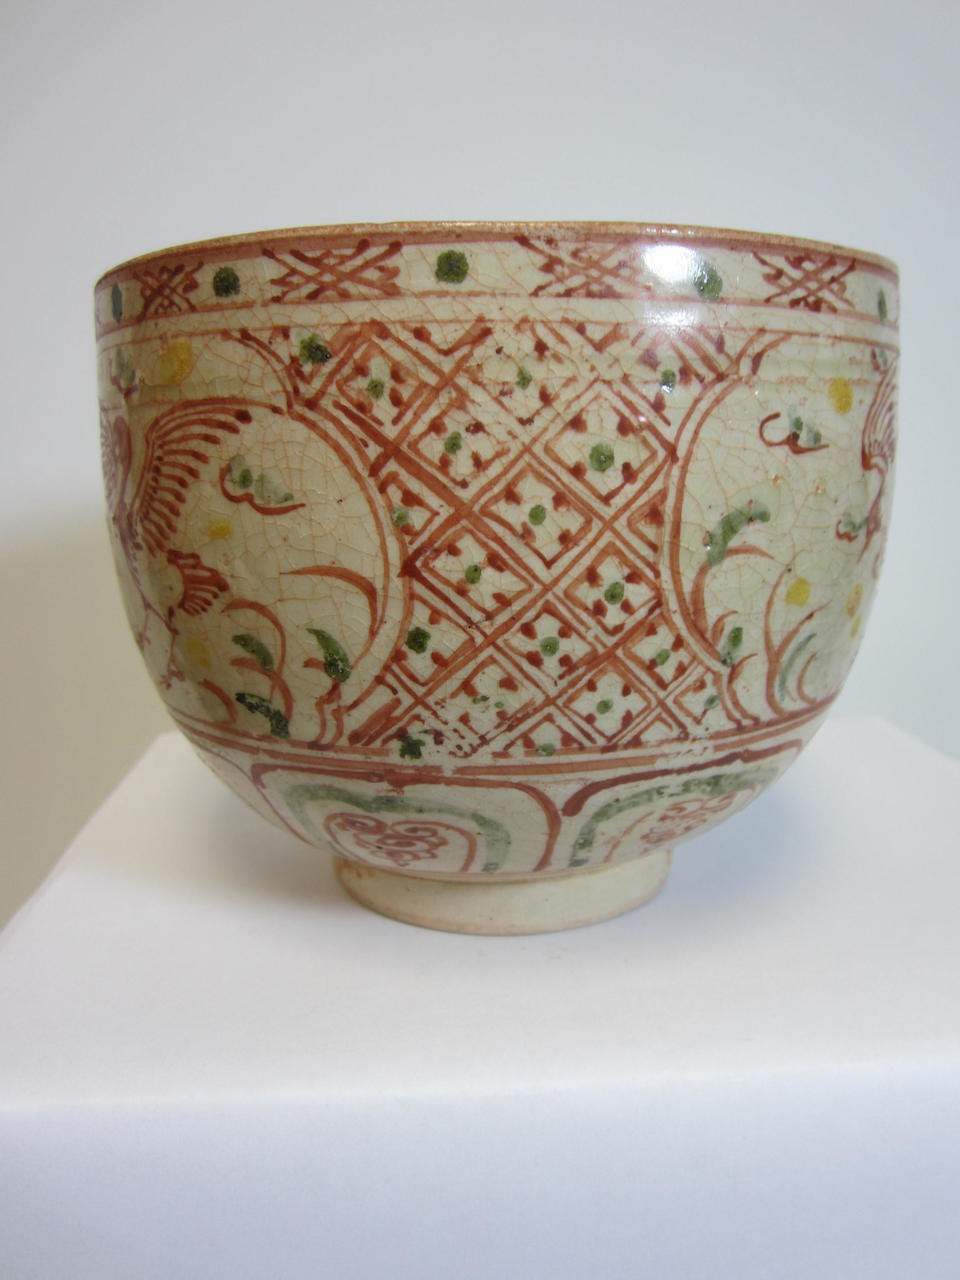 A deep bowl with polychrome enamel decoration Le dynasty, 16th century, the decoration possibly later